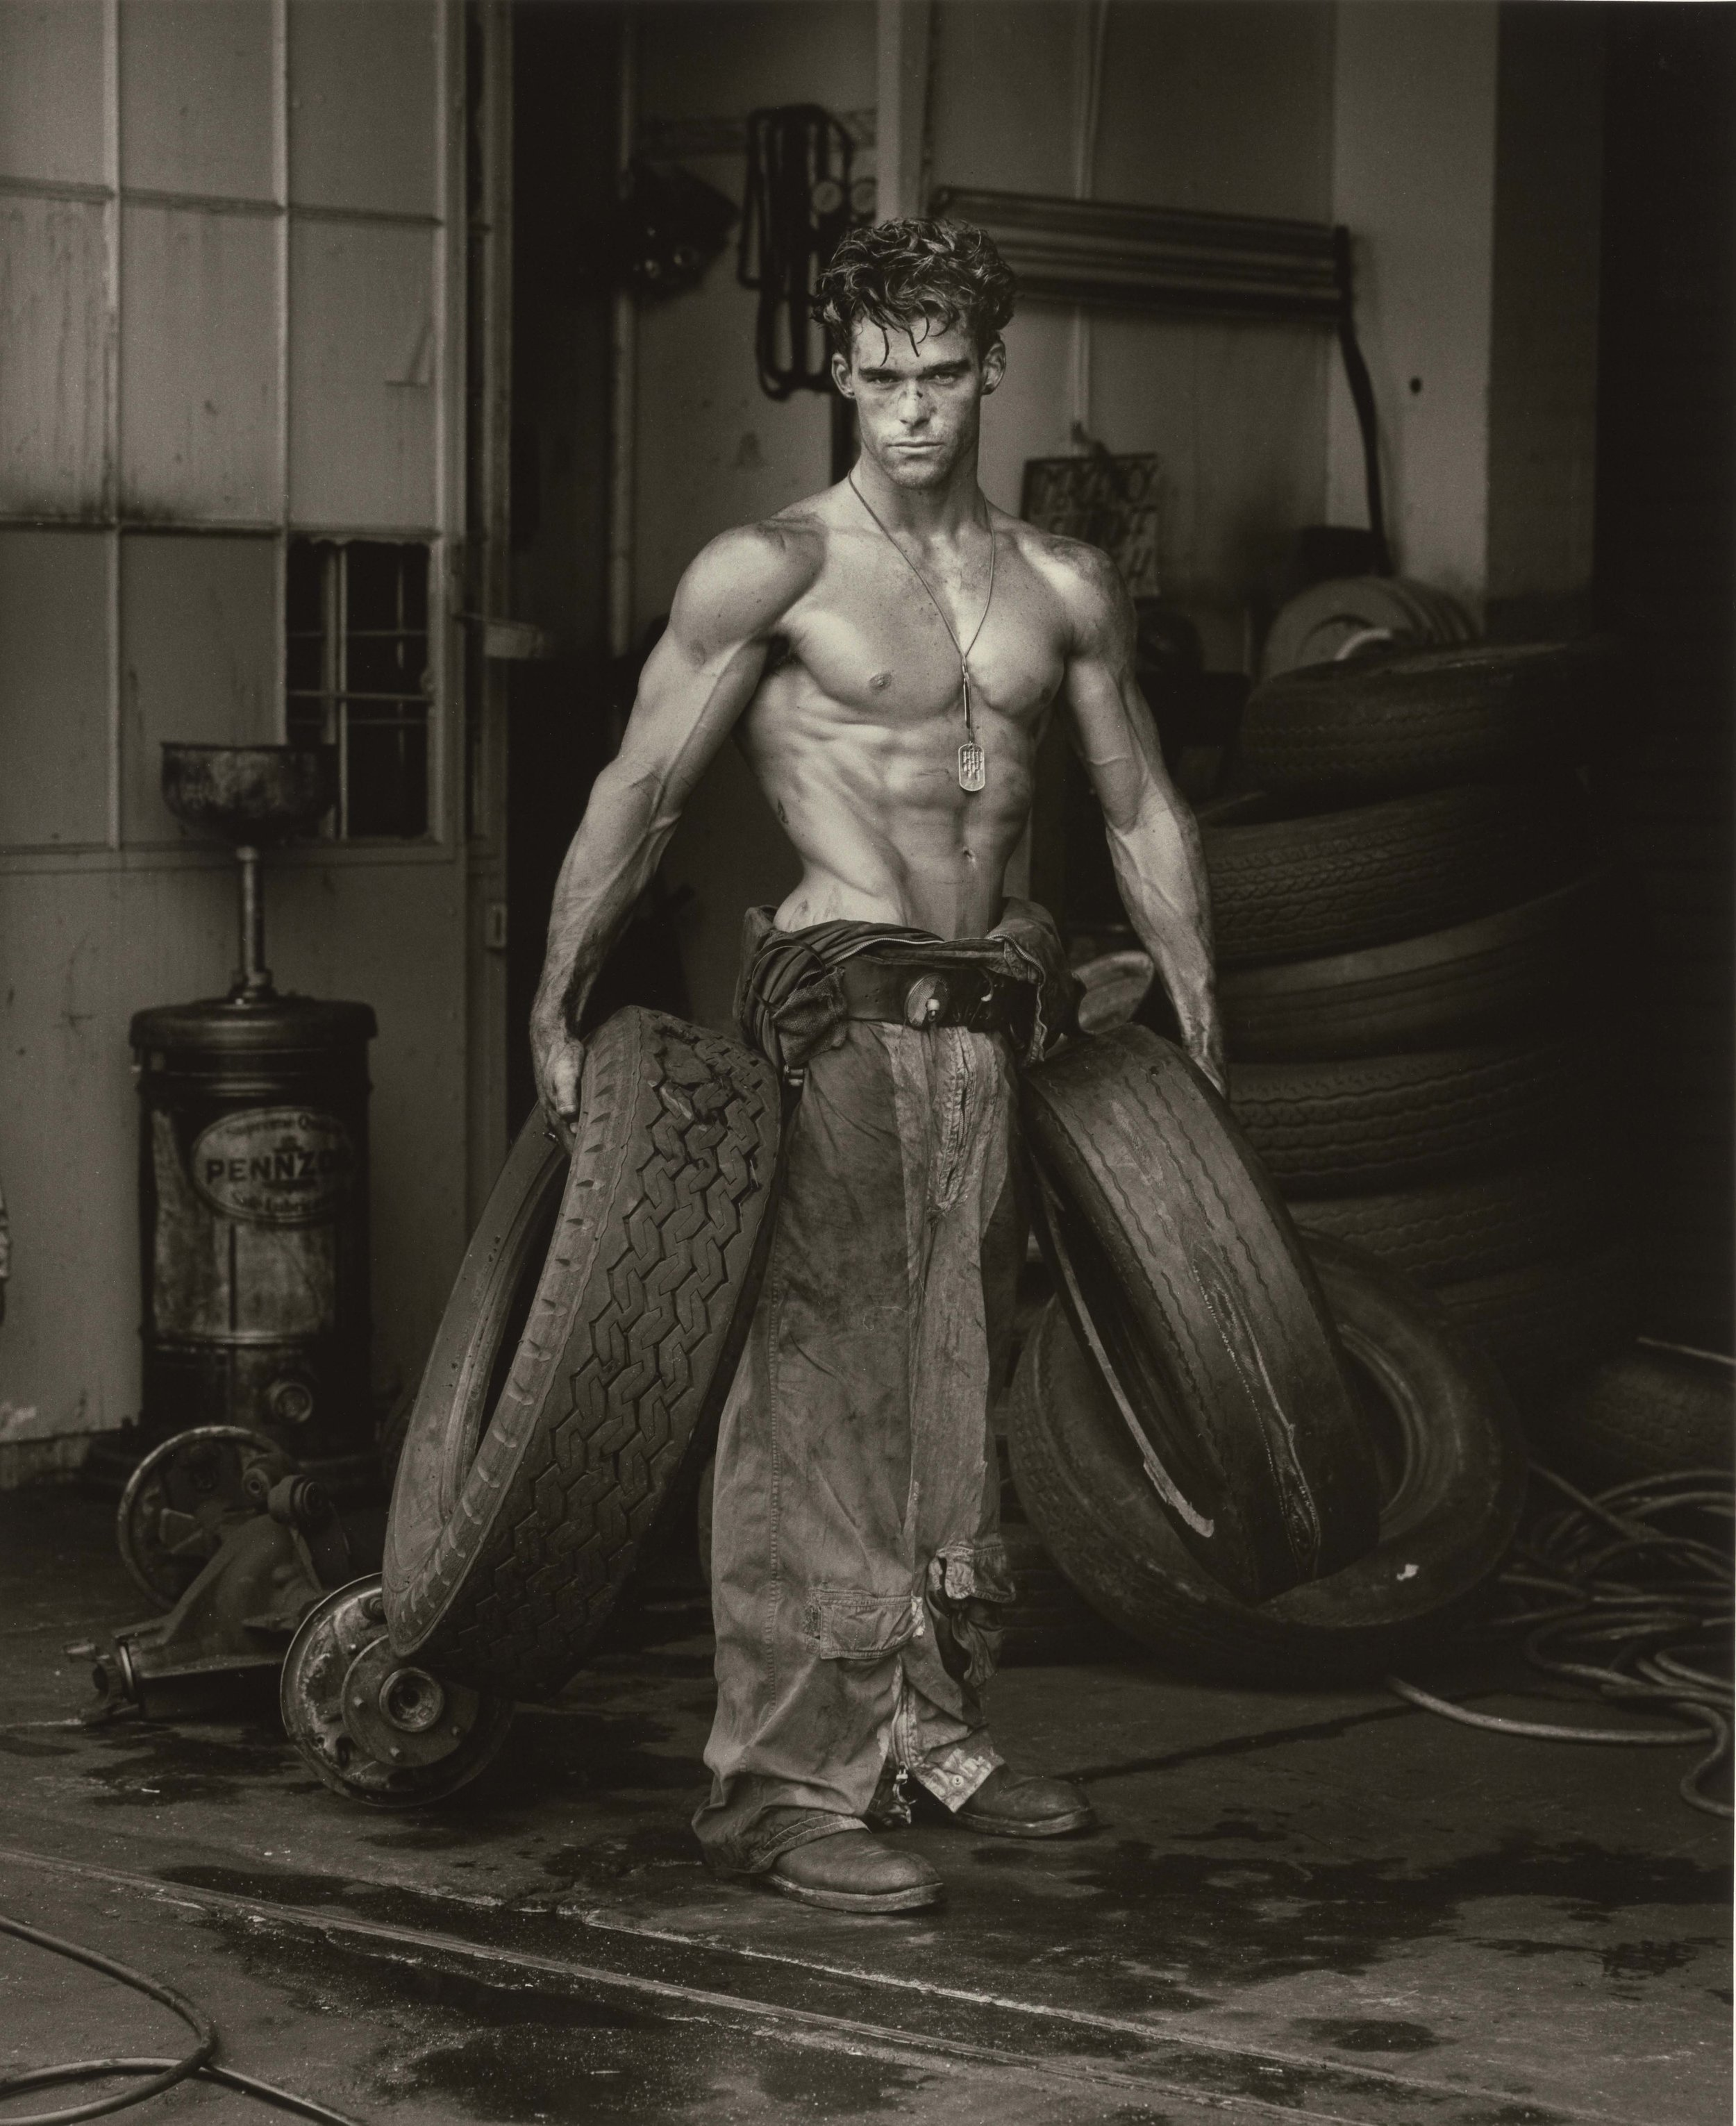 HERB RITTS (American, 1952–2002),  Fred with Tires, Hollywood , 1984. From the Body Shop series. Gelatin silver print, 47.1 × 38.6 cm (189⁄16 × 153⁄16 in.) Los Angeles, J. Paul Getty Museum. Gift of Herb Ritts Foundation, 2011.18.25. © Herb Ritts Foundation